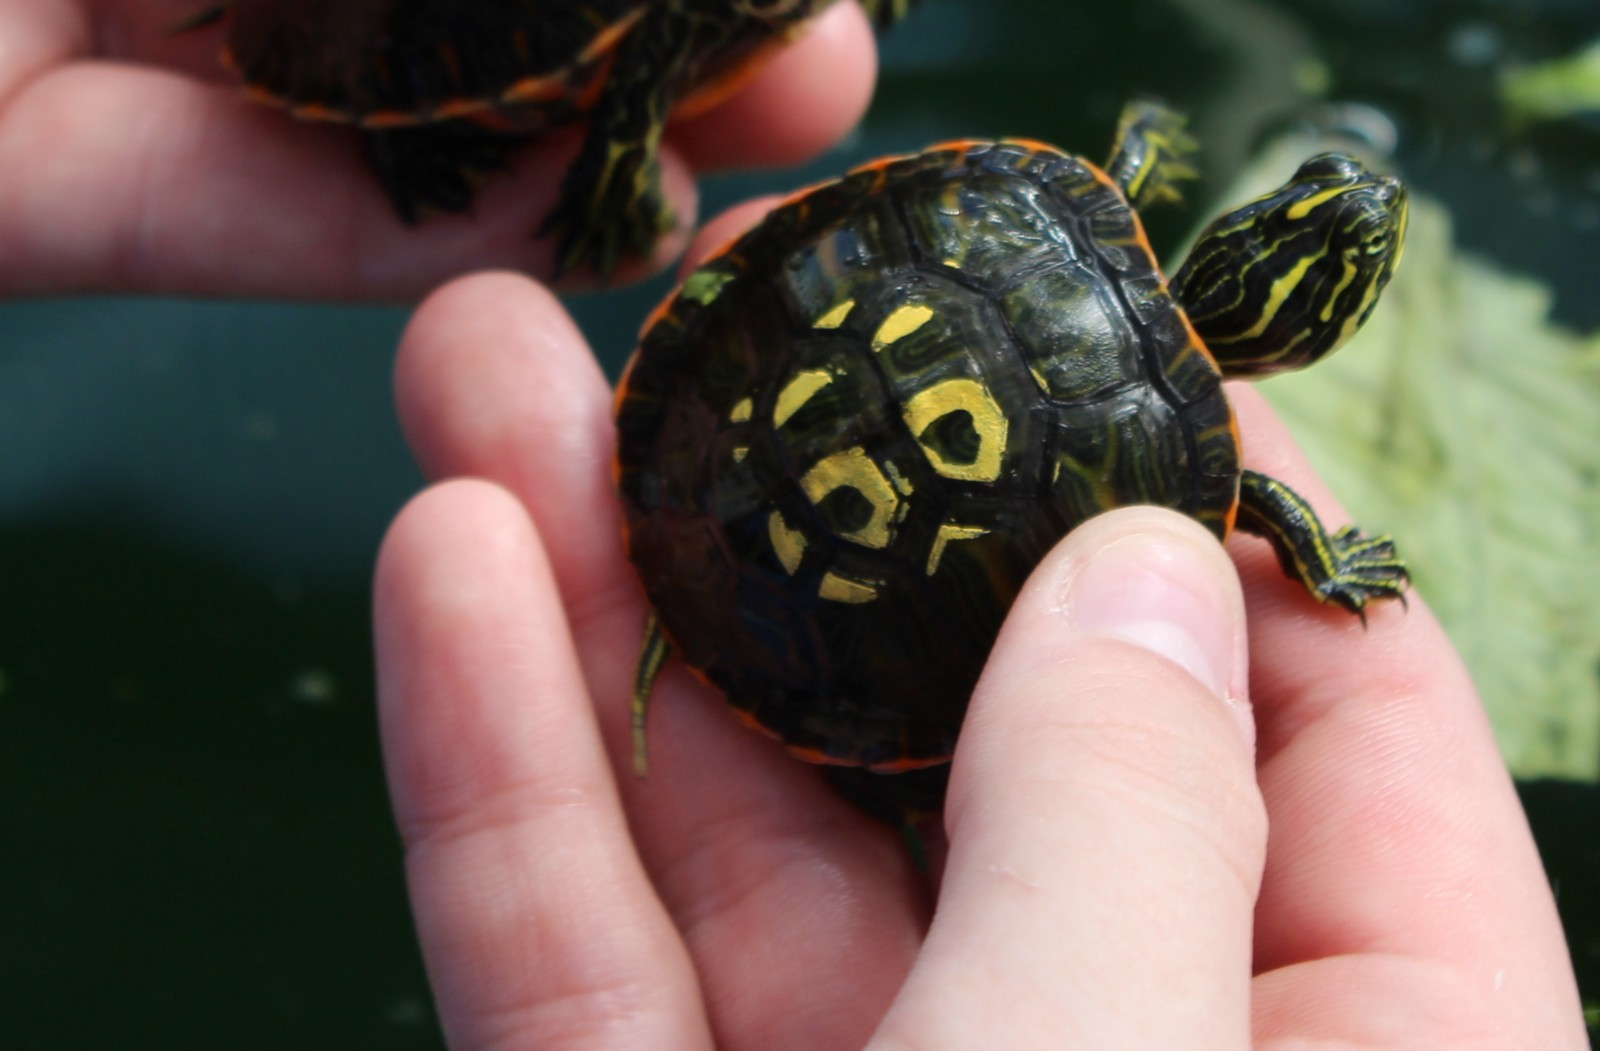 a small turtle held in a hand